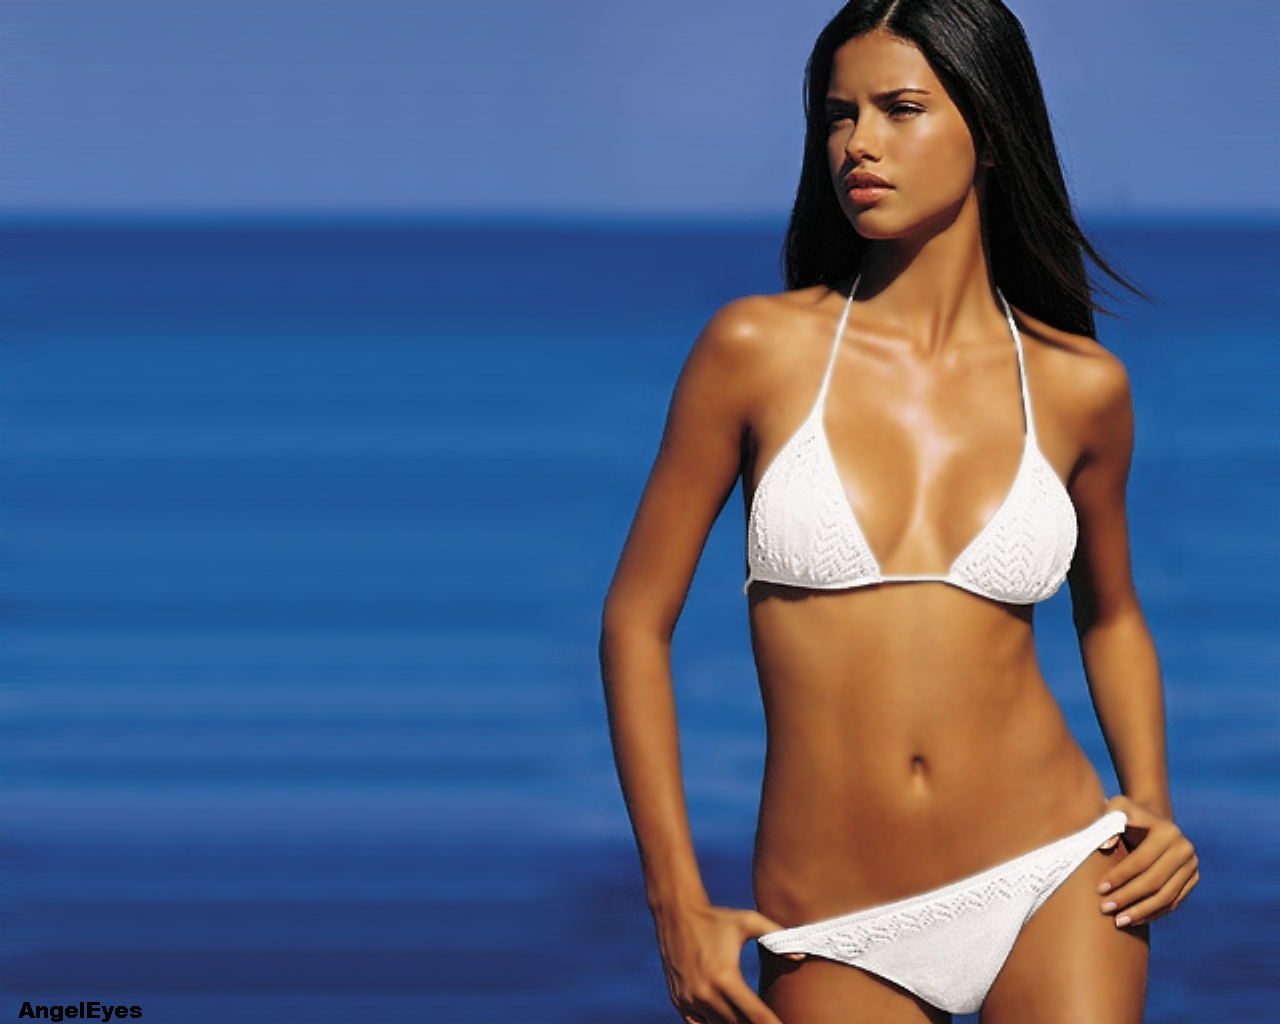 http://4.bp.blogspot.com/-JtUUTQEm8_4/UIgAqJgeVvI/AAAAAAAACkU/xbm1HueQo_0/s1600/adriana-lima-hot-bikini-feet-legs-pics-photos-wallpapers-and-images-+(1).jpg